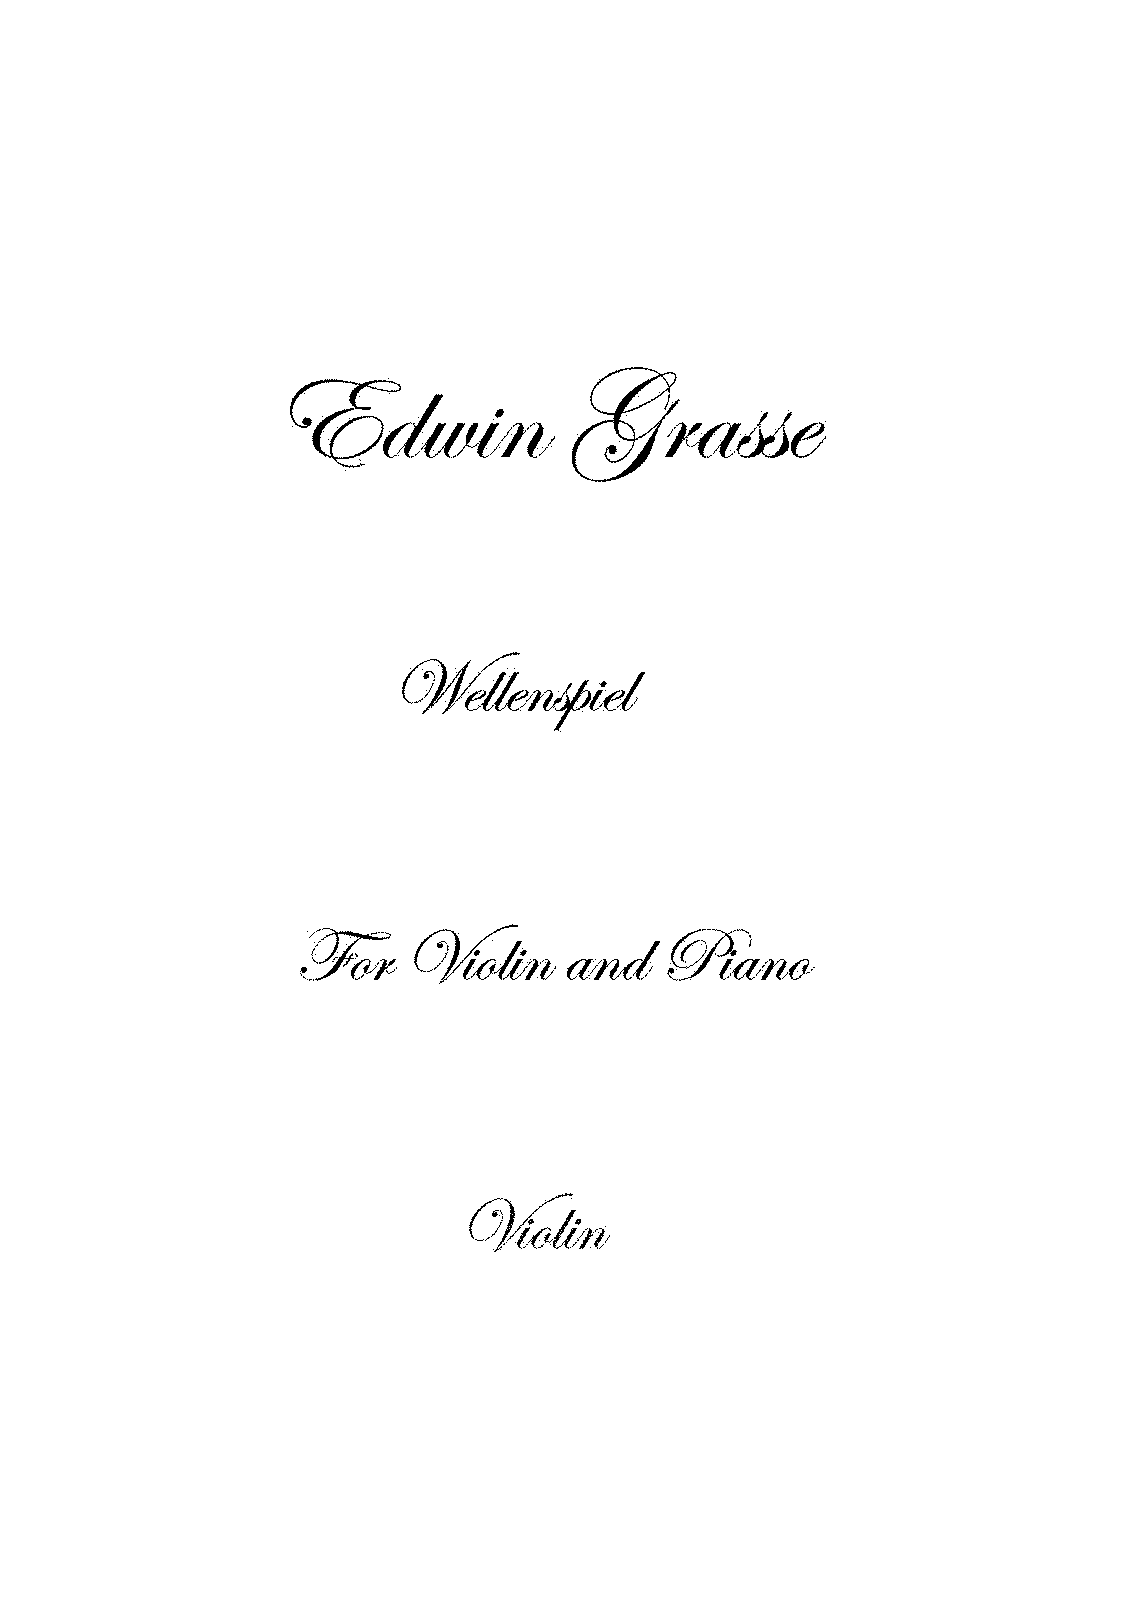 Grasse Edwin Waves at Play for Violin and Piano.pdf